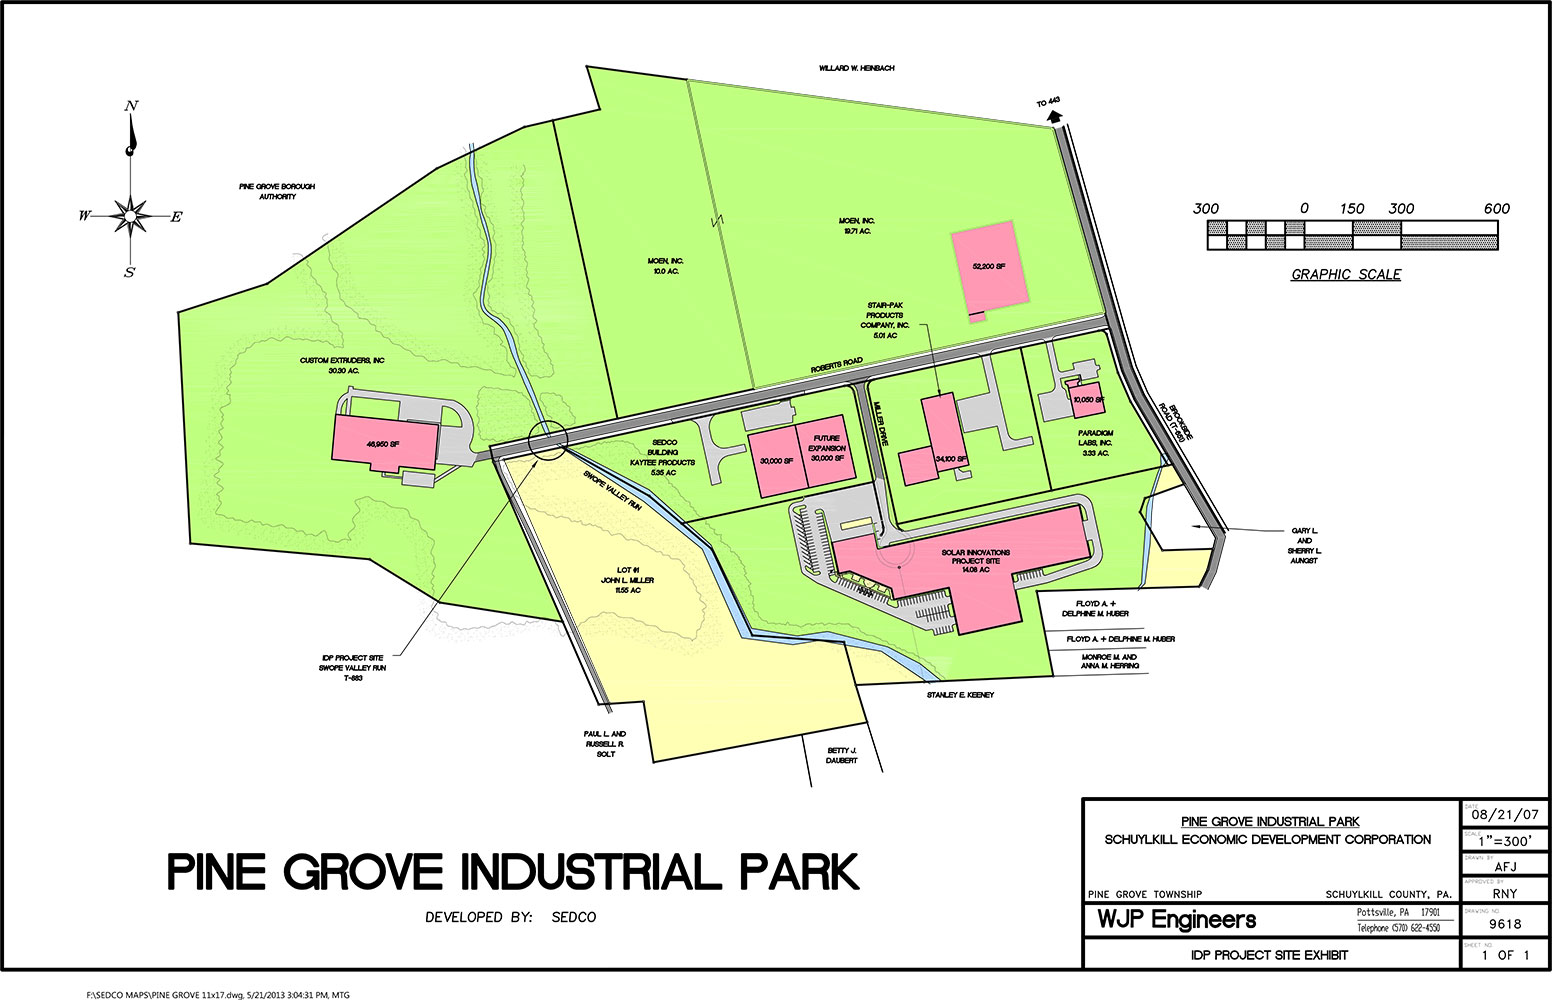 Pine Grove Industrial Park